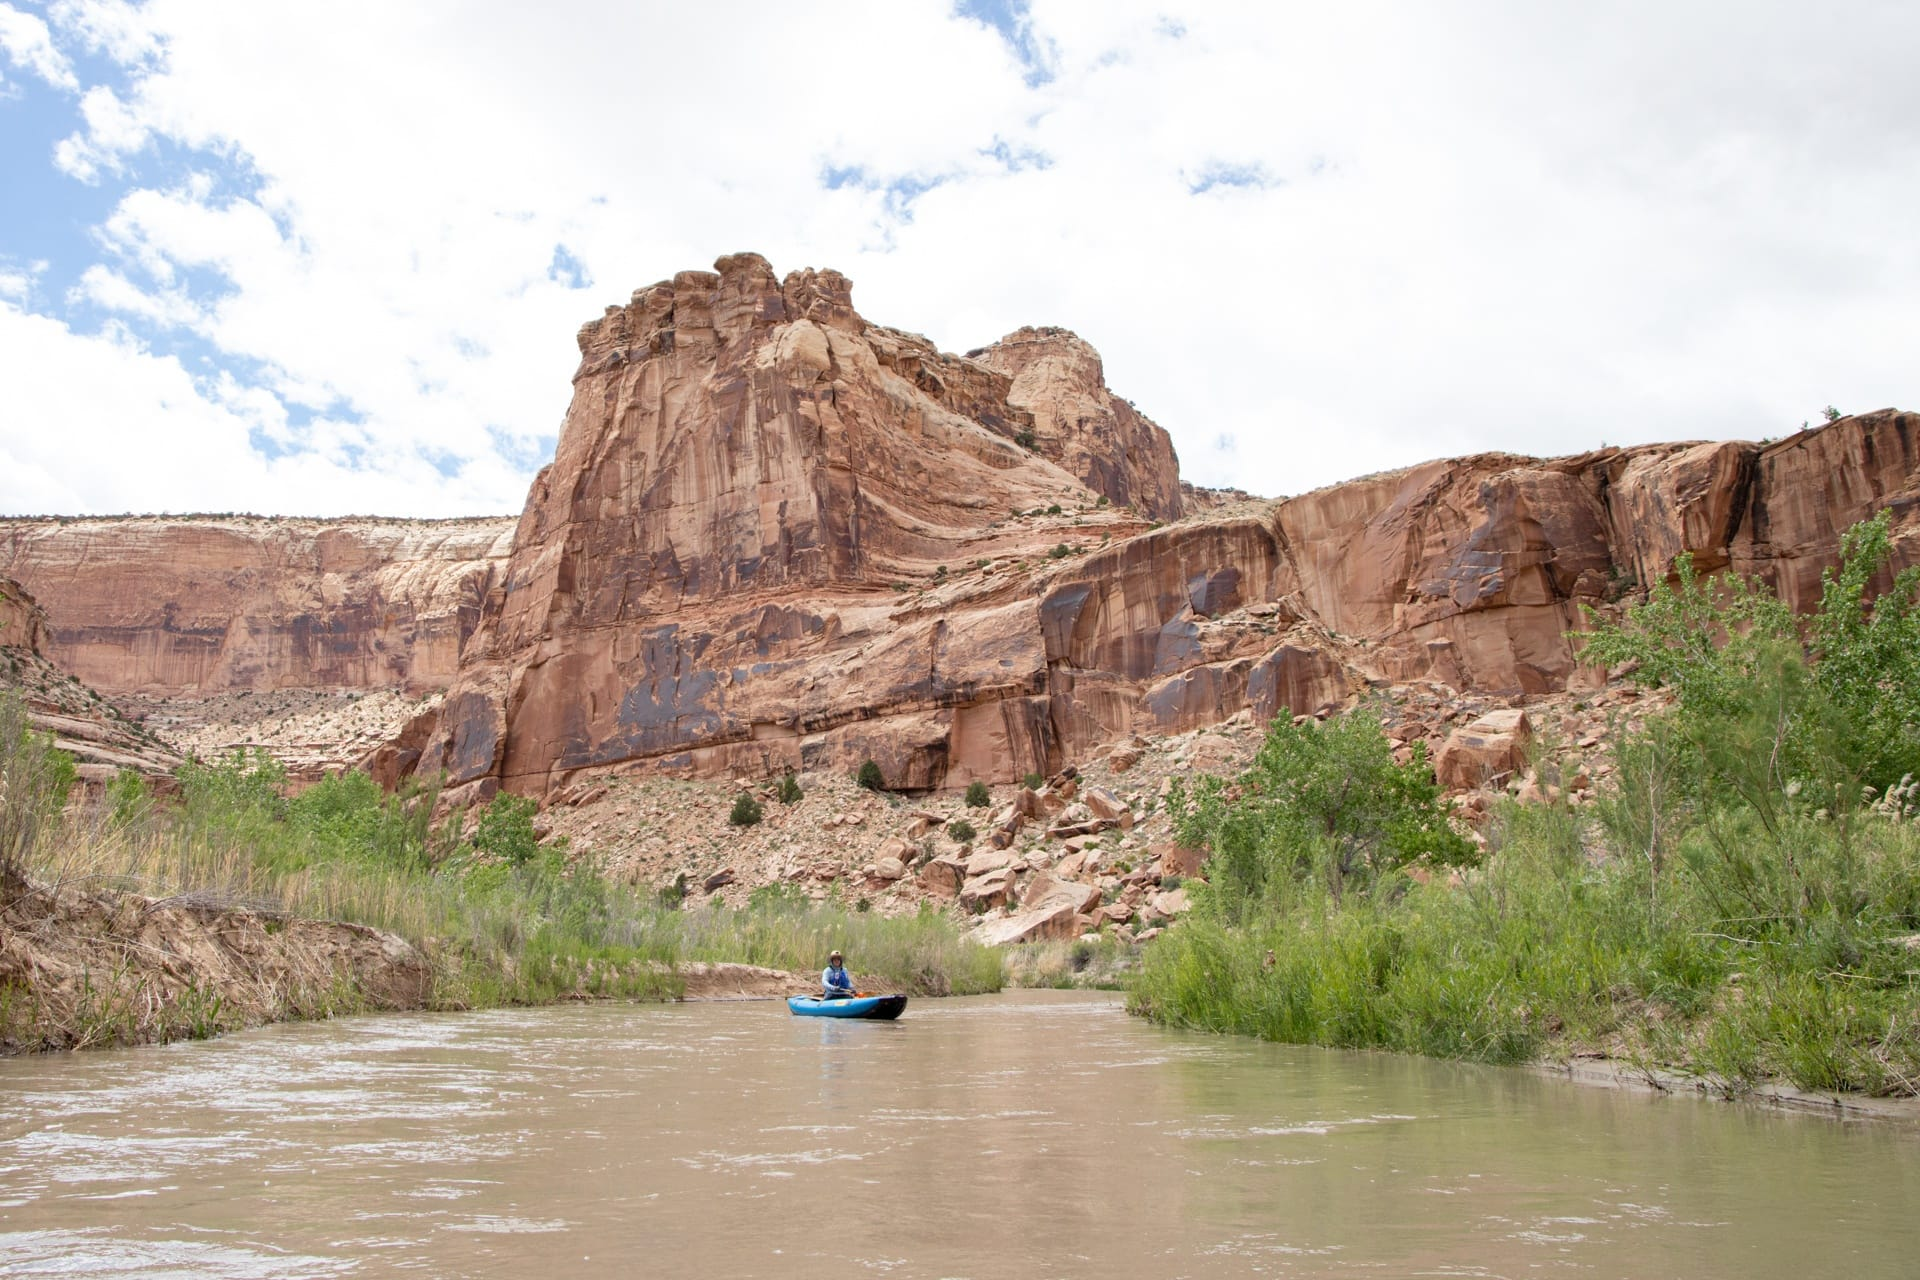 Plan an epic packrafting or kayaking trip on the San Rafael River through Utah's San Rafael Swell, with info on flows, camping, gear, and Leave No Trace.